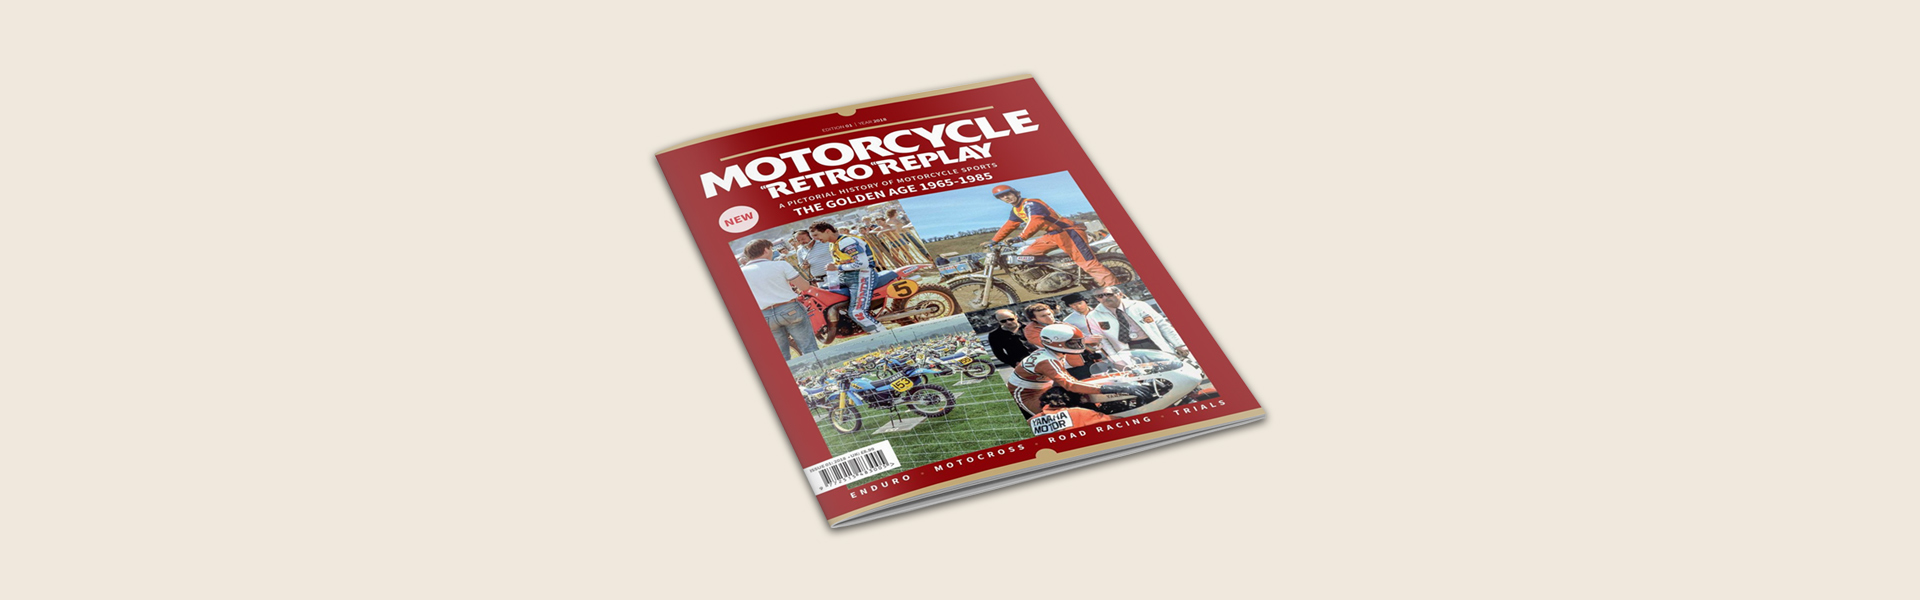 motorcycle retro replay magazine cover page banner